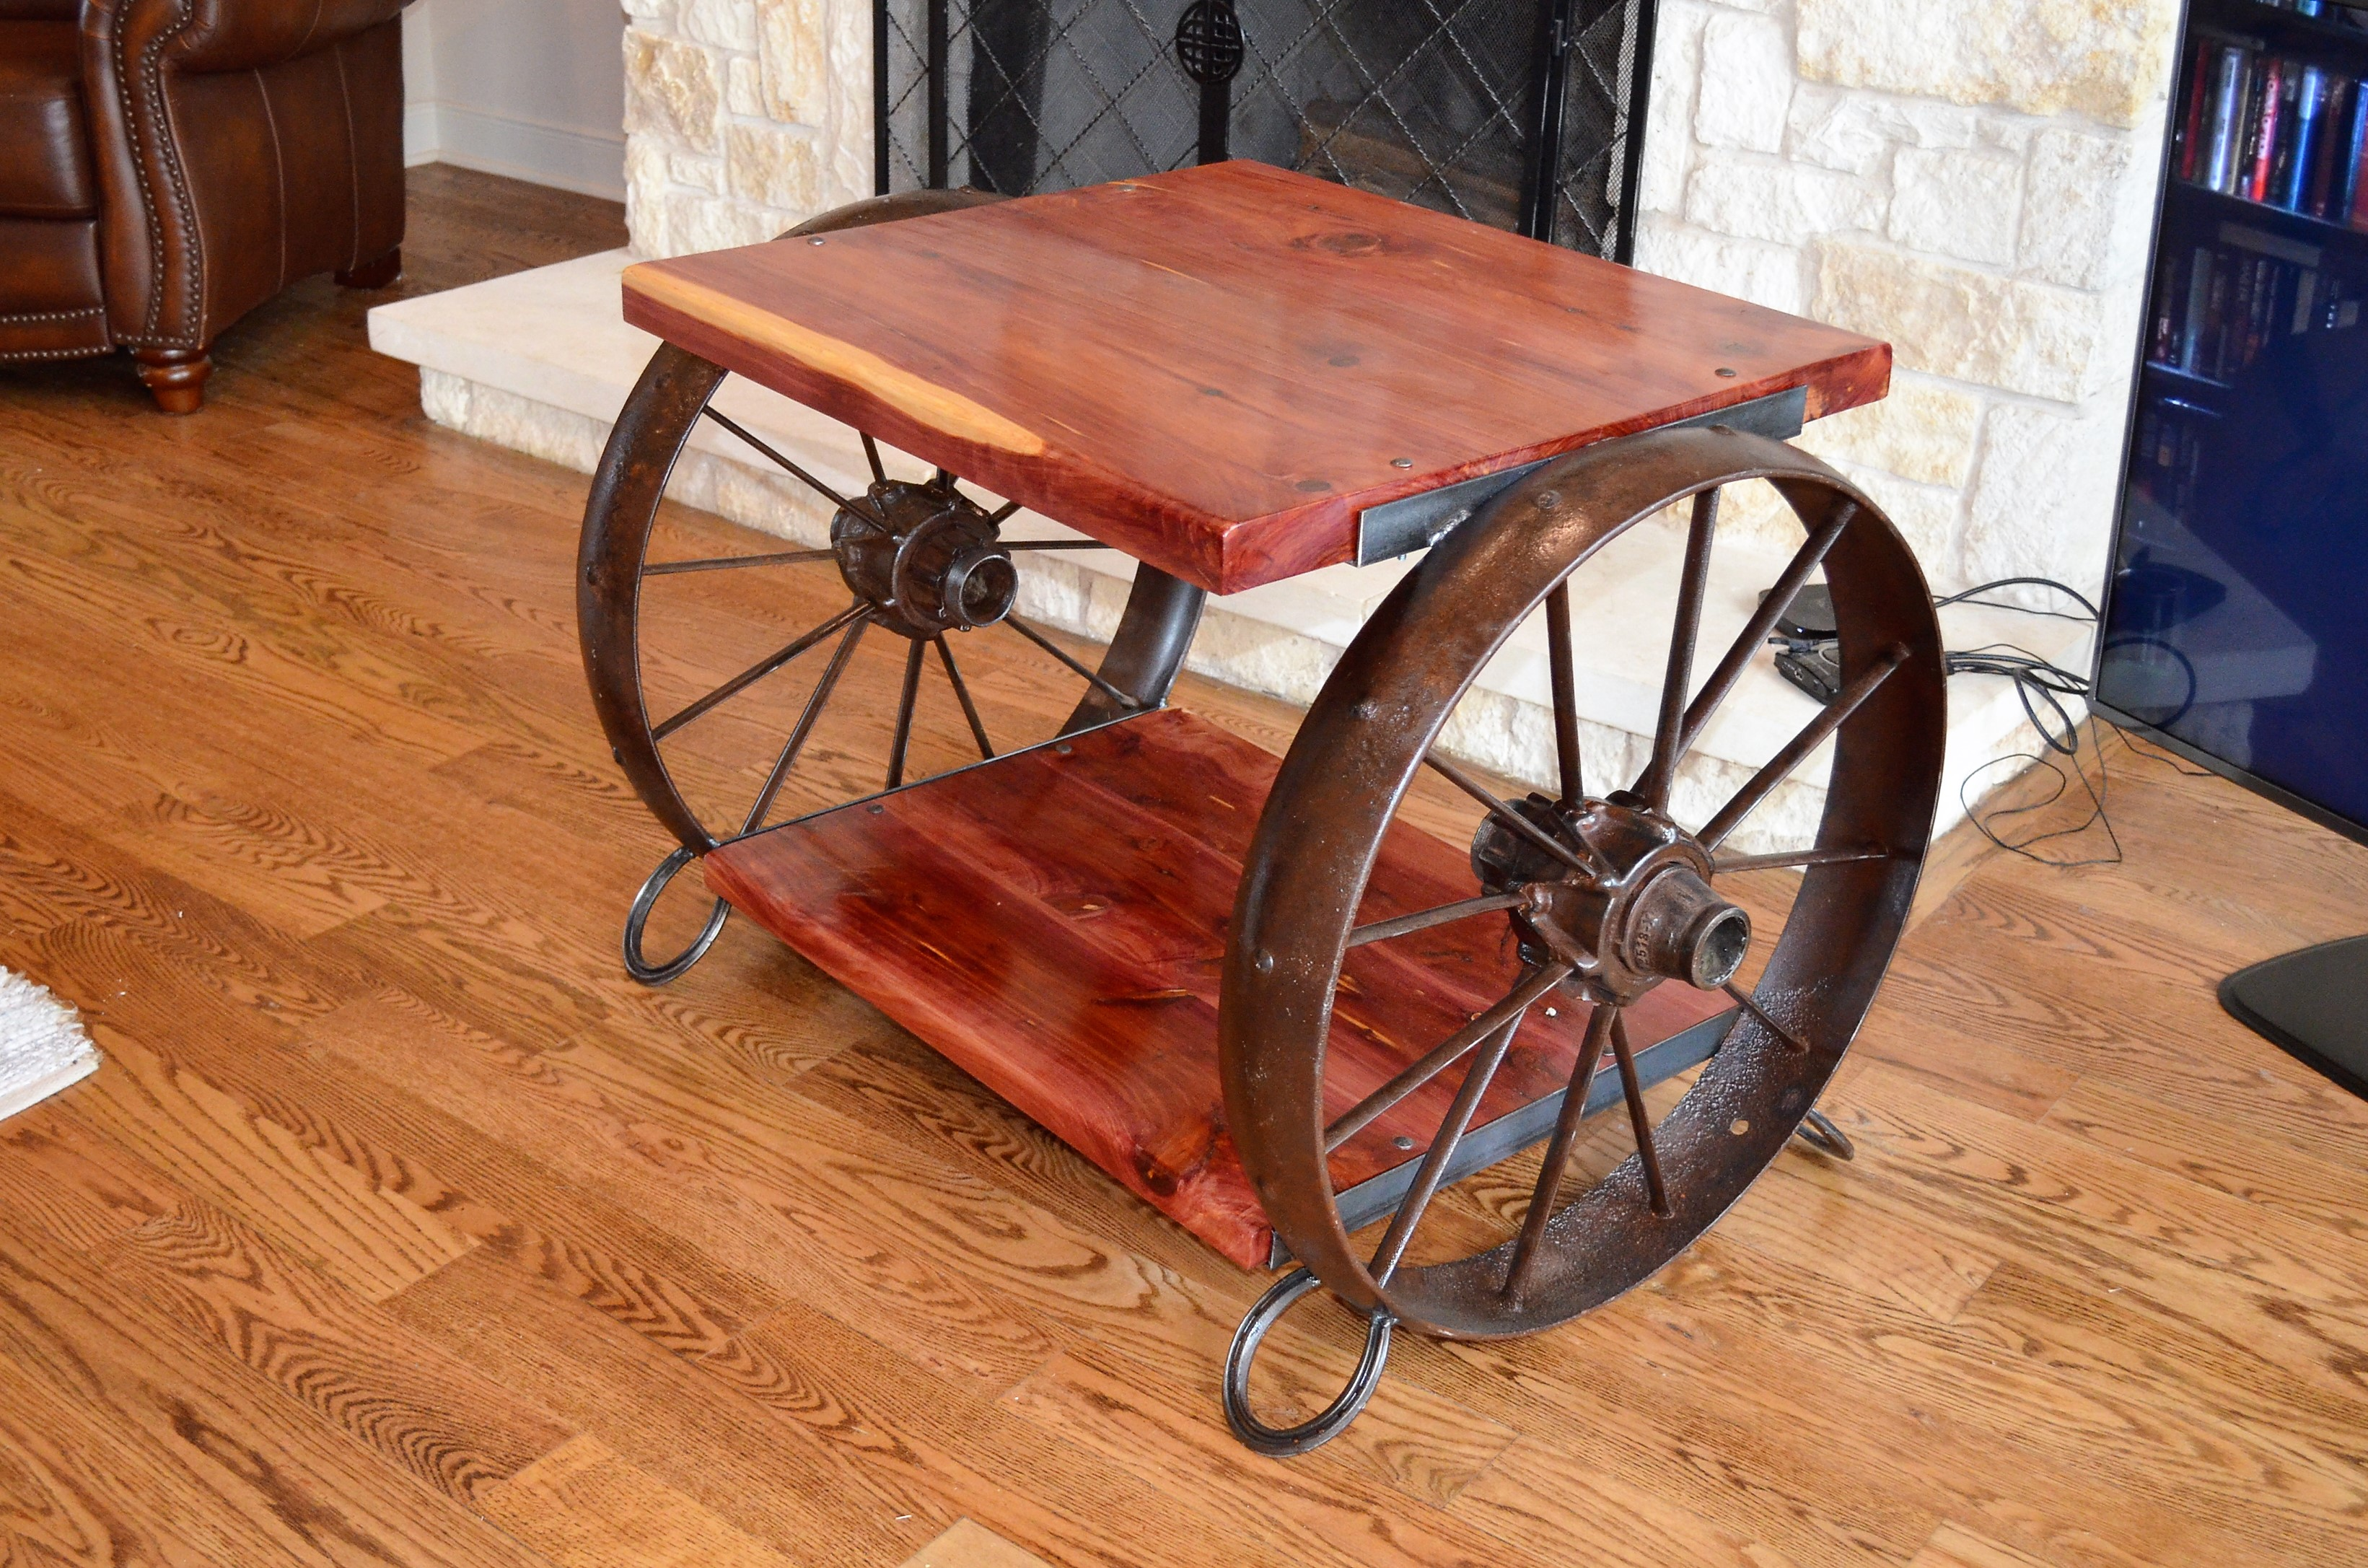 Ordinaire Cedar And Wagon Wheel Table